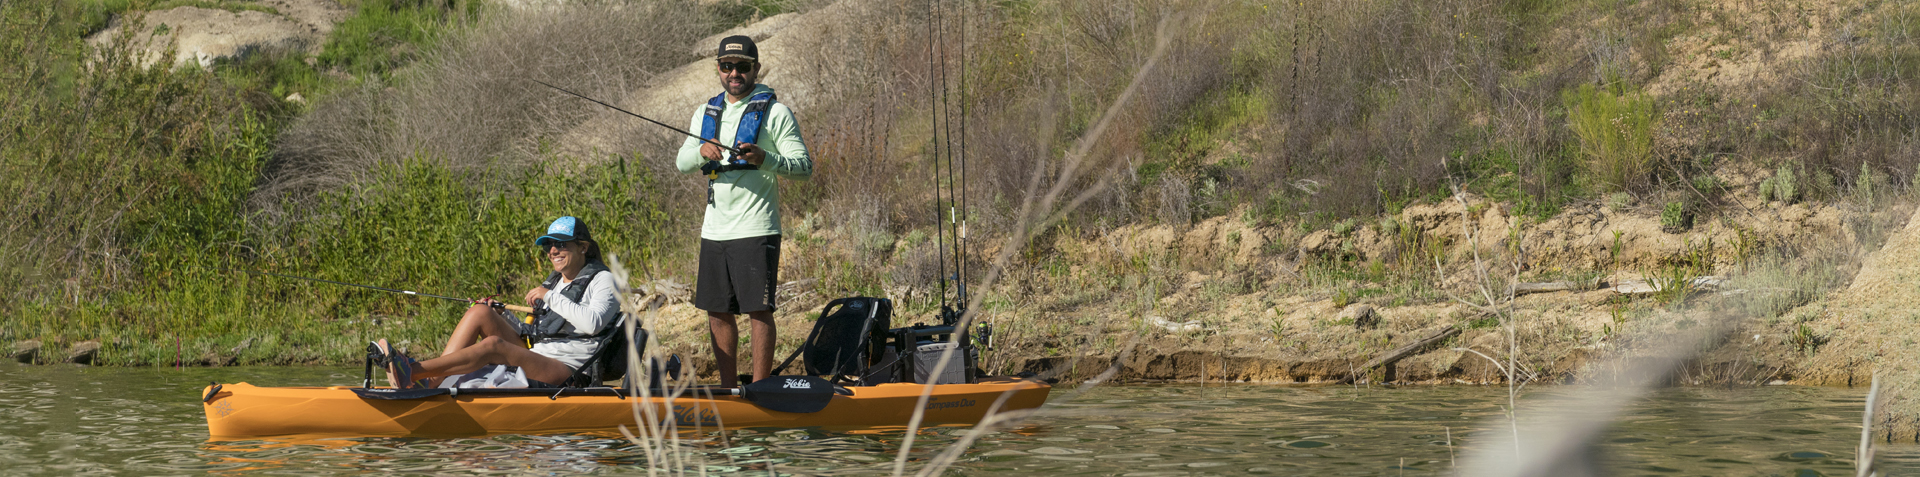 Kayaks: Mirage Compass Duo by Hobie - Image 2677